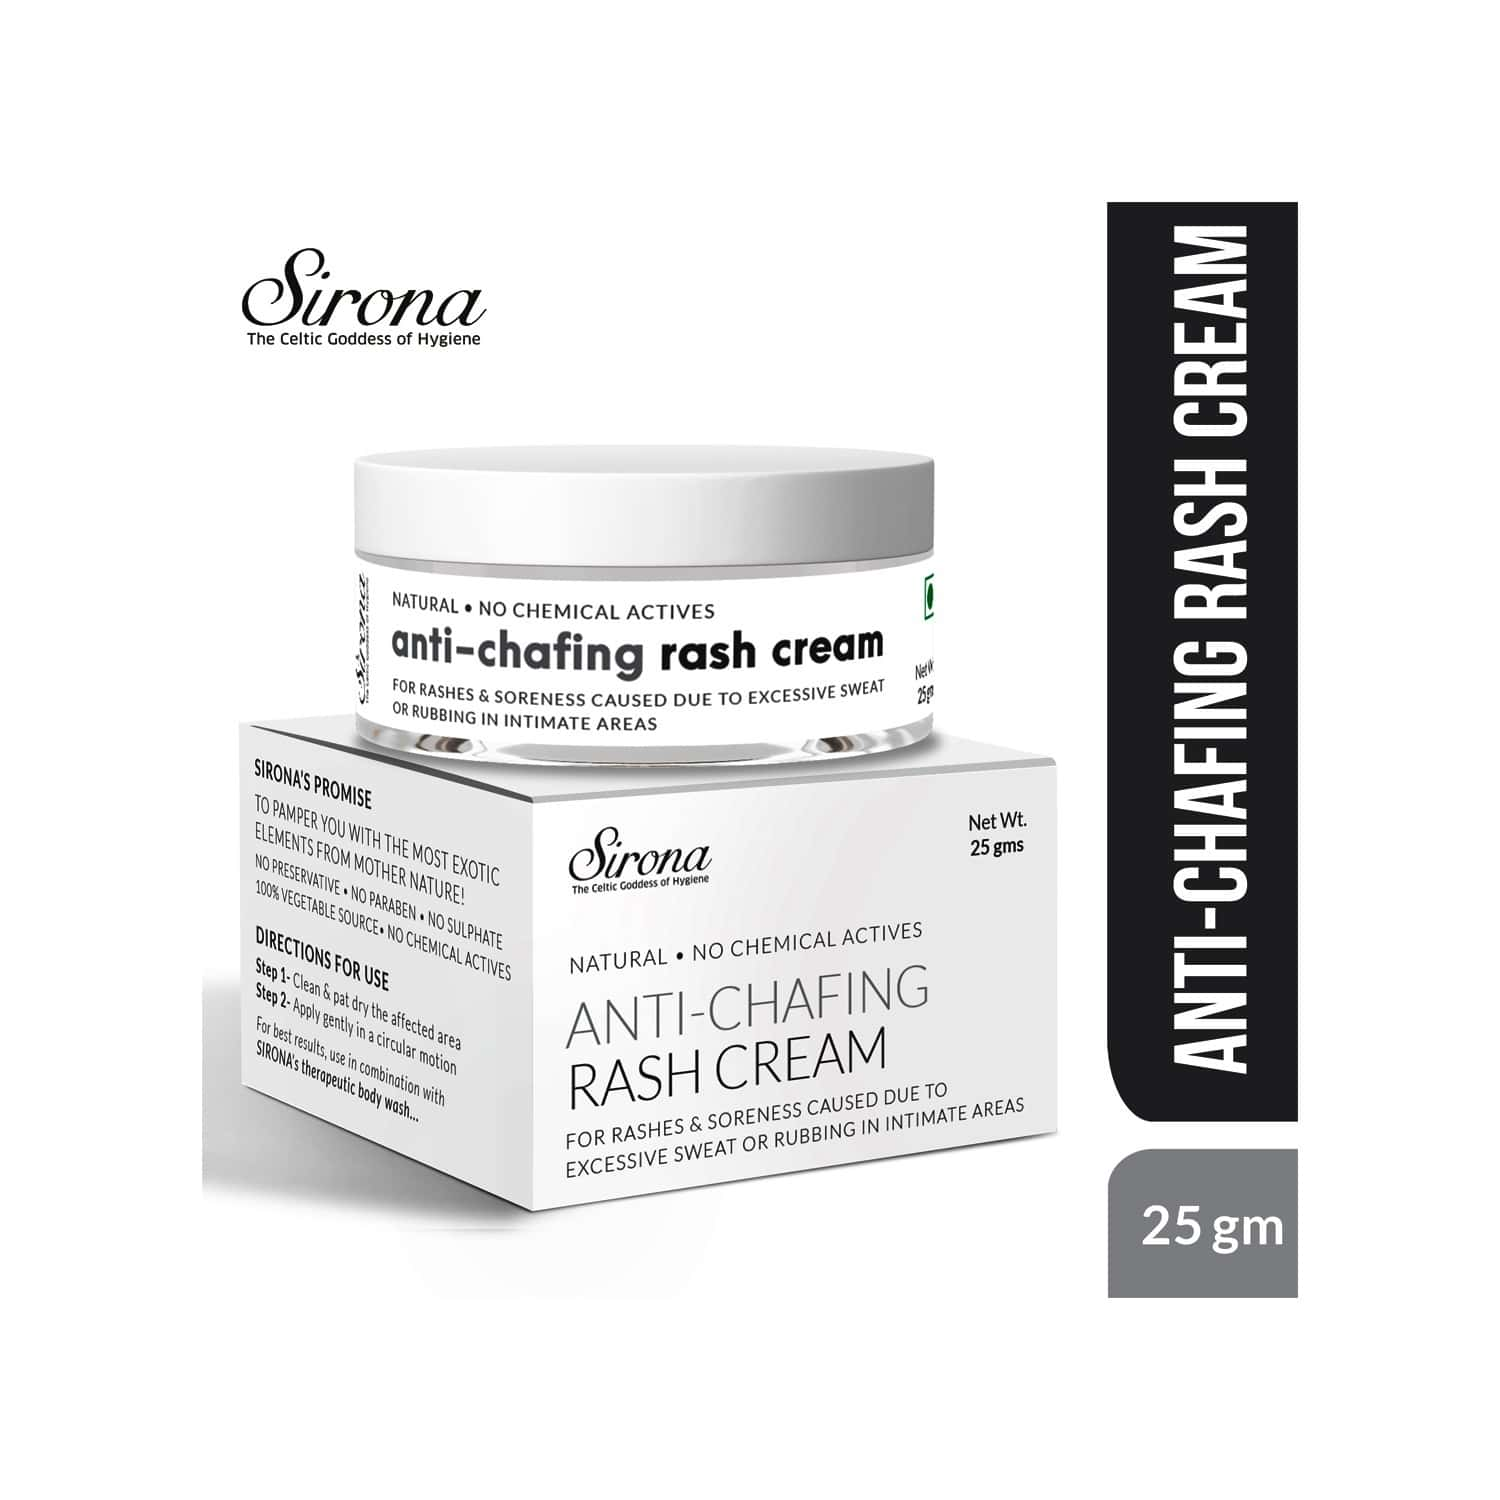 Sirona Natural Anti Chafing Rash Cream- 5 Magical Herbs - Help In Soothing Rashes Due To Pads, Heavy Thighs, Chaffing Due To Sports Activities - 25 Gm